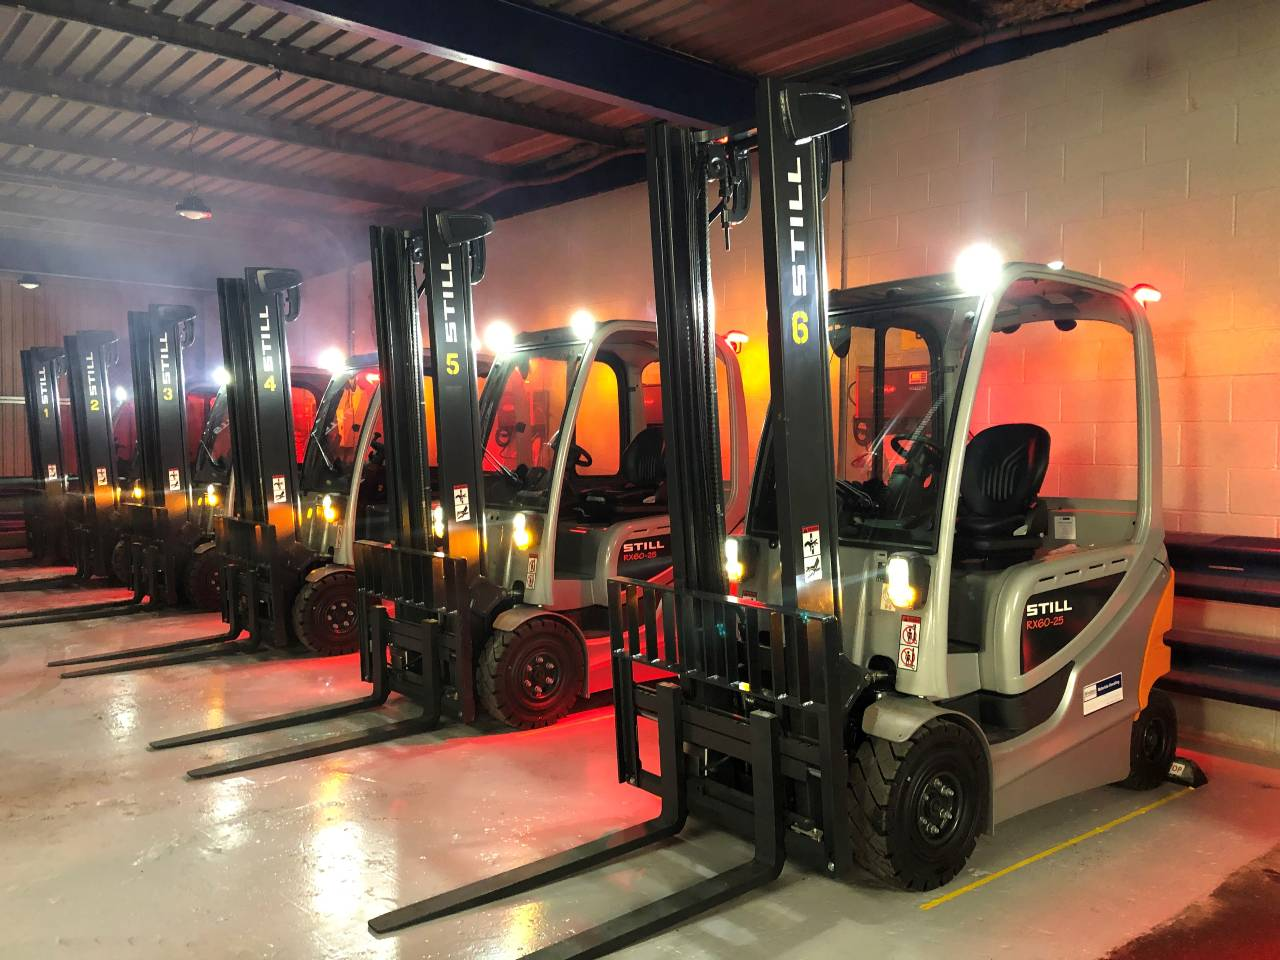 Fork lift trucks in a row in the garage